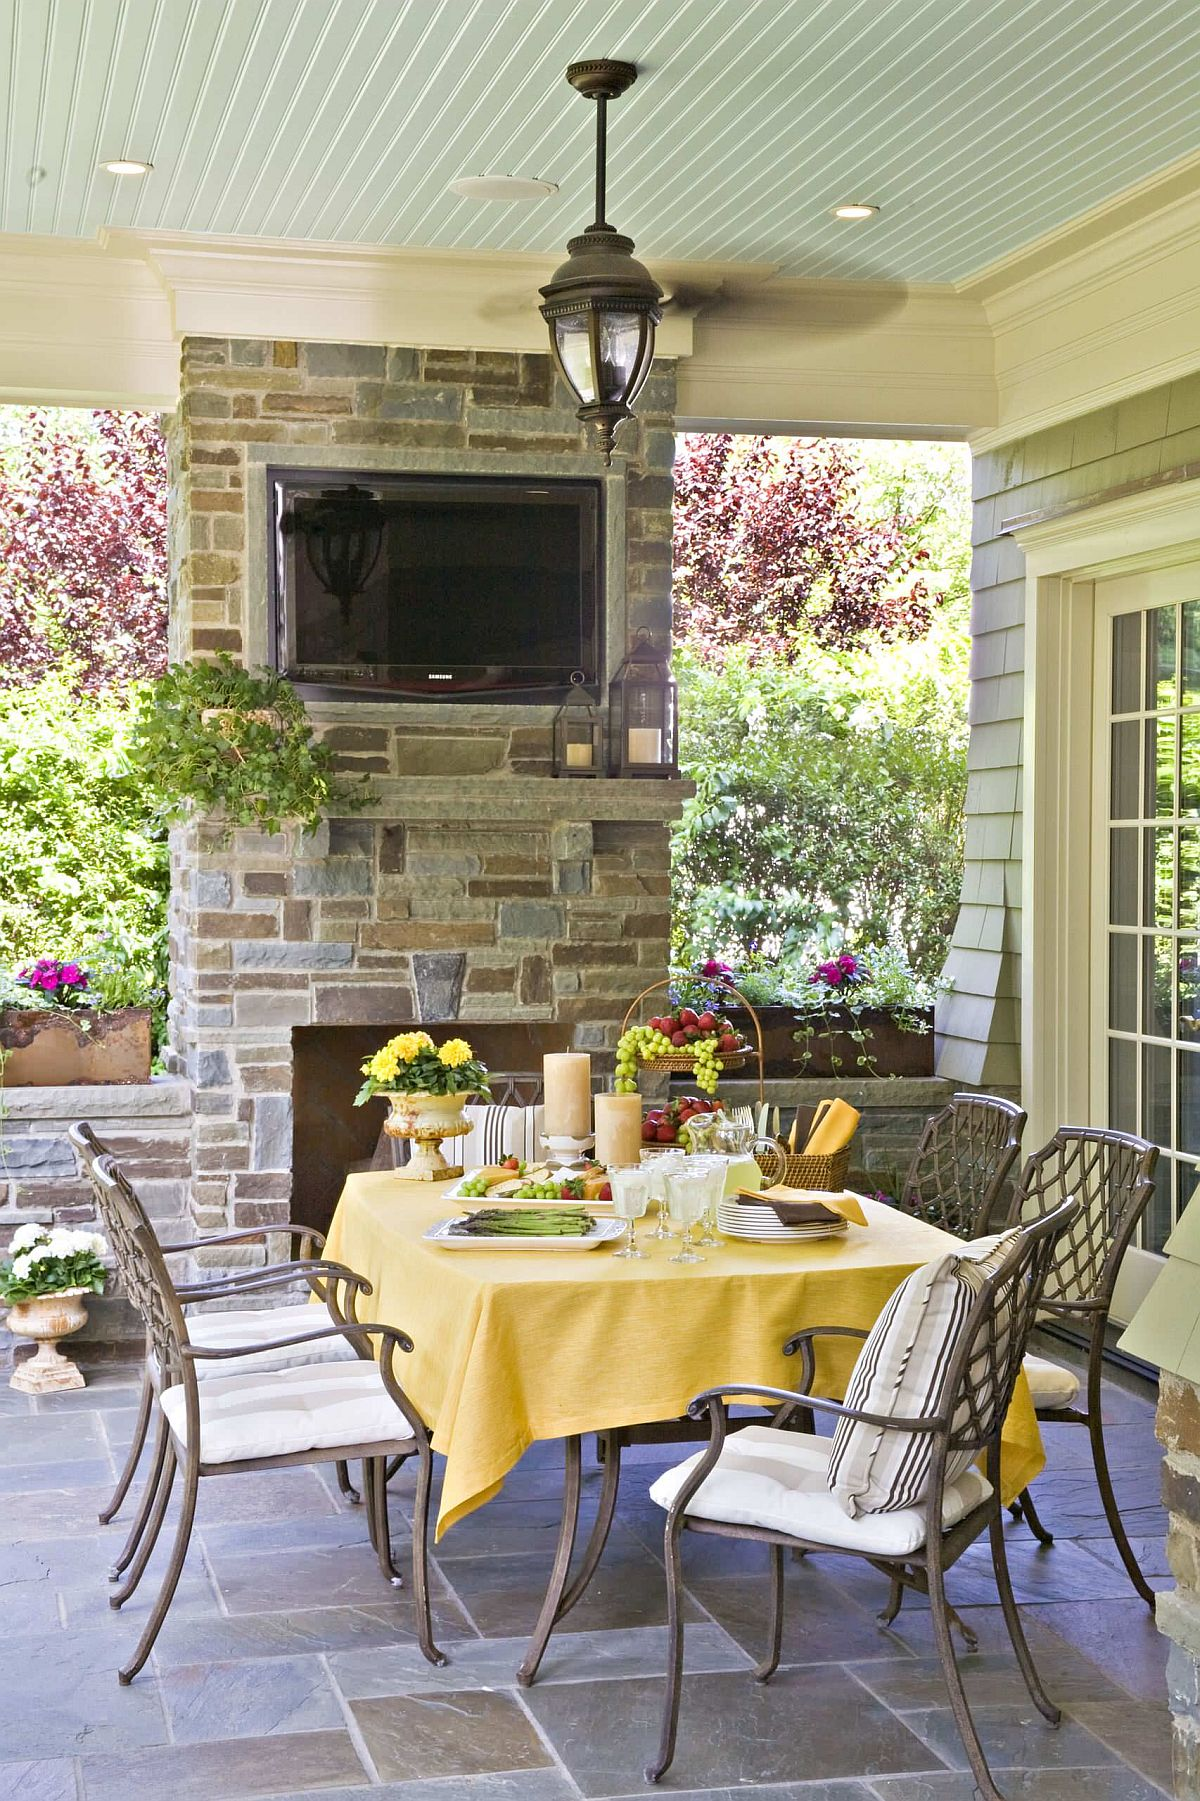 Yellow able cloth along with accents for the outdoor dining table